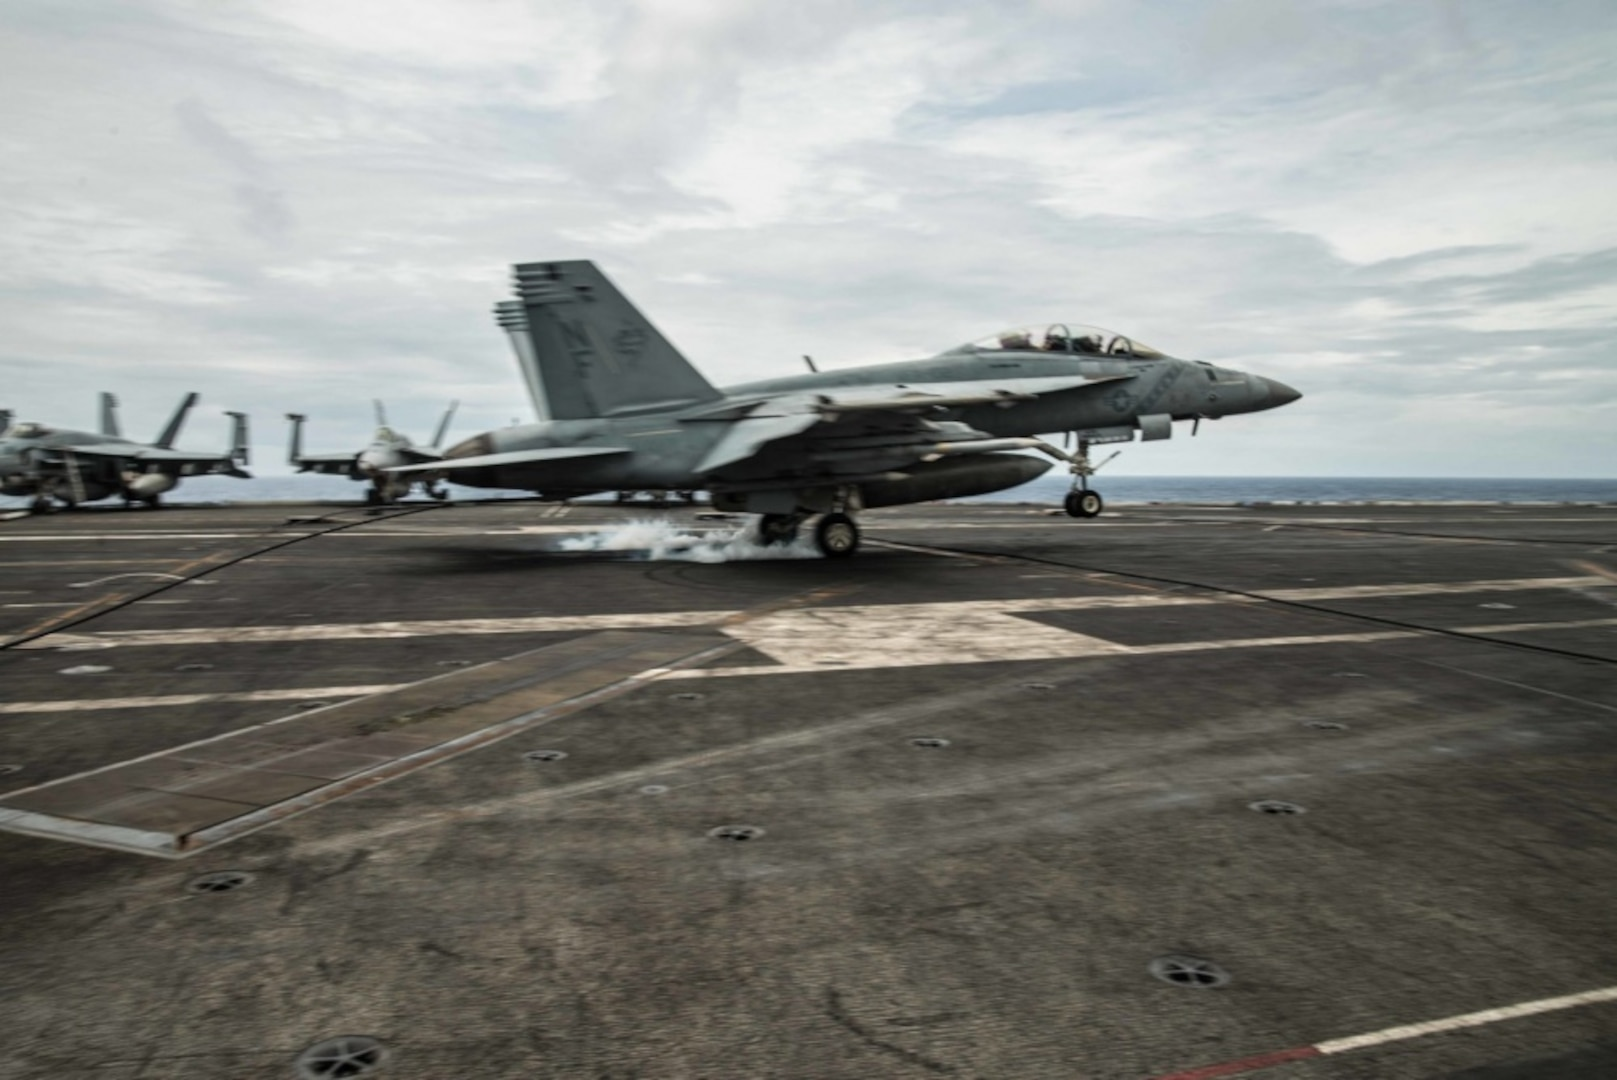 SOUTH CHINA SEA (August 6, 2019) An F/A-18F Super Hornet, piloted by Cmdr. Harry Evans, commanding officer of Strike Fighter Squadron (VFA) 102, lands on the flight deck of the Navy™s forward-deployed aircraft carrier USS Ronald Reagan (CVN 76). This was Evans™ 1,000th arrested carrier landing. Ronald Reagan, the flagship of Carrier Strike Group 5, provides a combat-ready force that protects and defends the collective maritime interests of its allies and partners in the Indo-Pacific region.